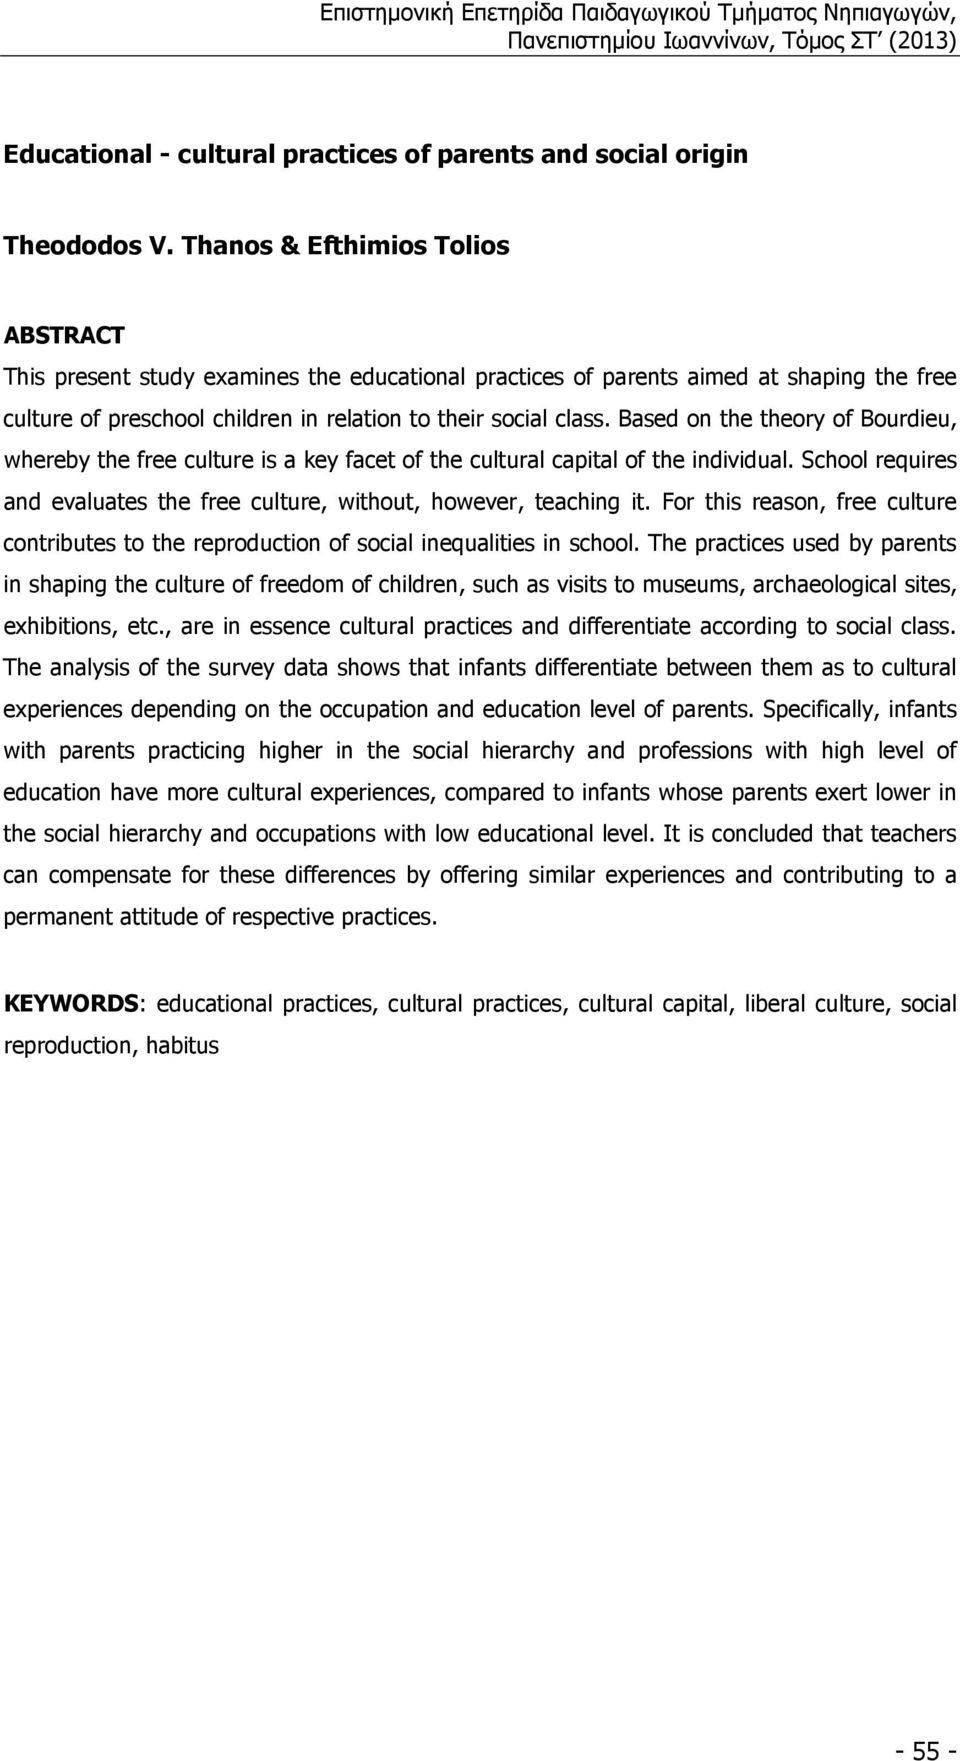 Based on the theory of Bourdieu, whereby the free culture is a key facet of the cultural capital of the individual. School requires and evaluates the free culture, without, however, teaching it.